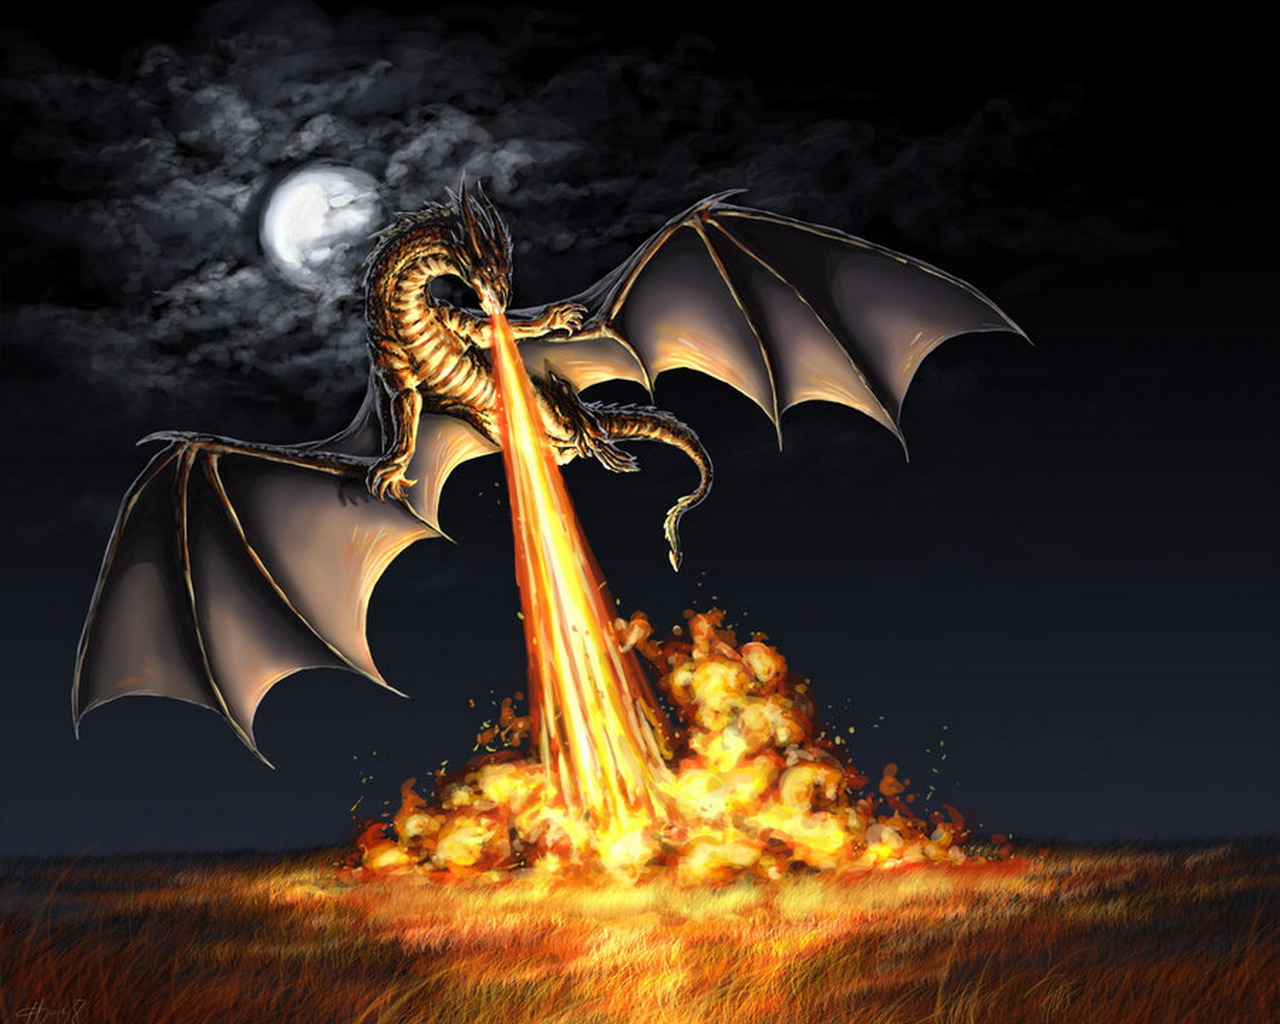 a dragons lair images gallery dragon devastating fire